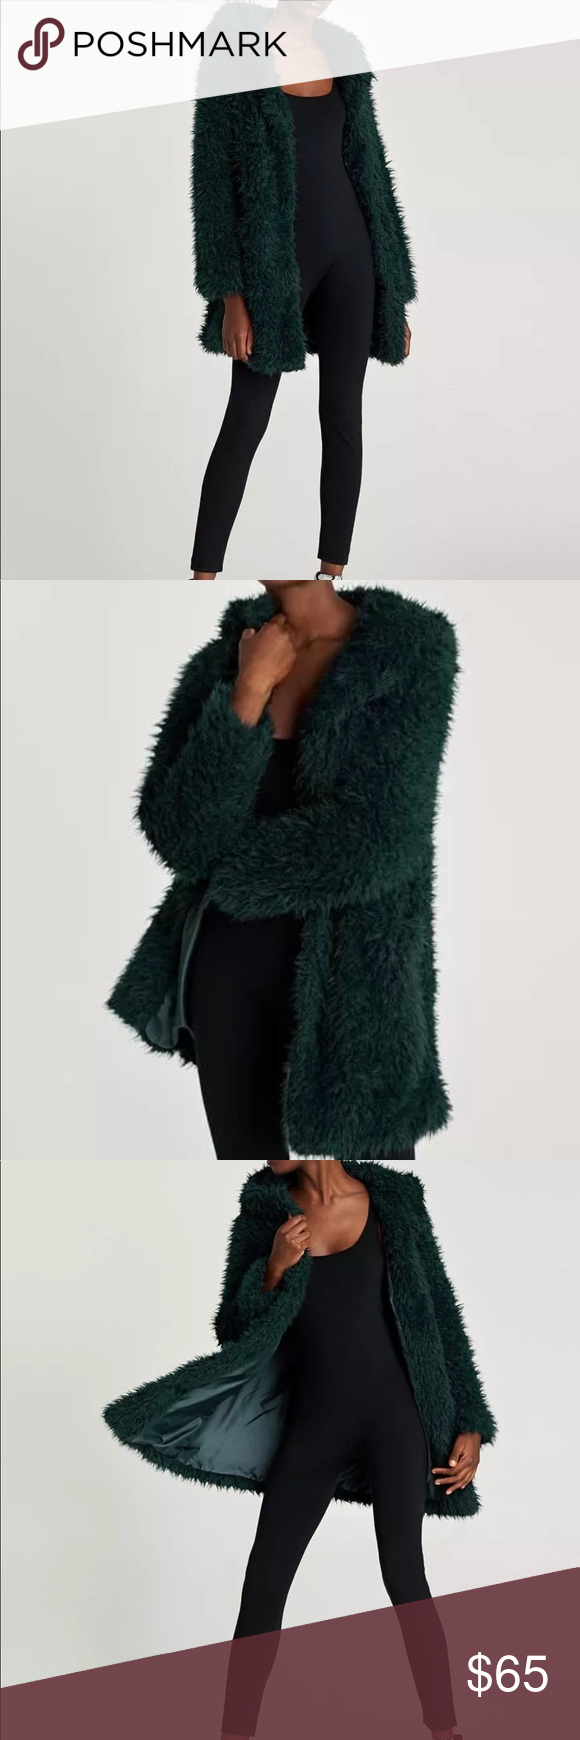 e93fe550 BNWT Zara Fluffy Jacket - Bottle Green Never worn Zara textured faux fur  short coat with hood and front pockets. Snap front button closure, 2  pockets in the ...